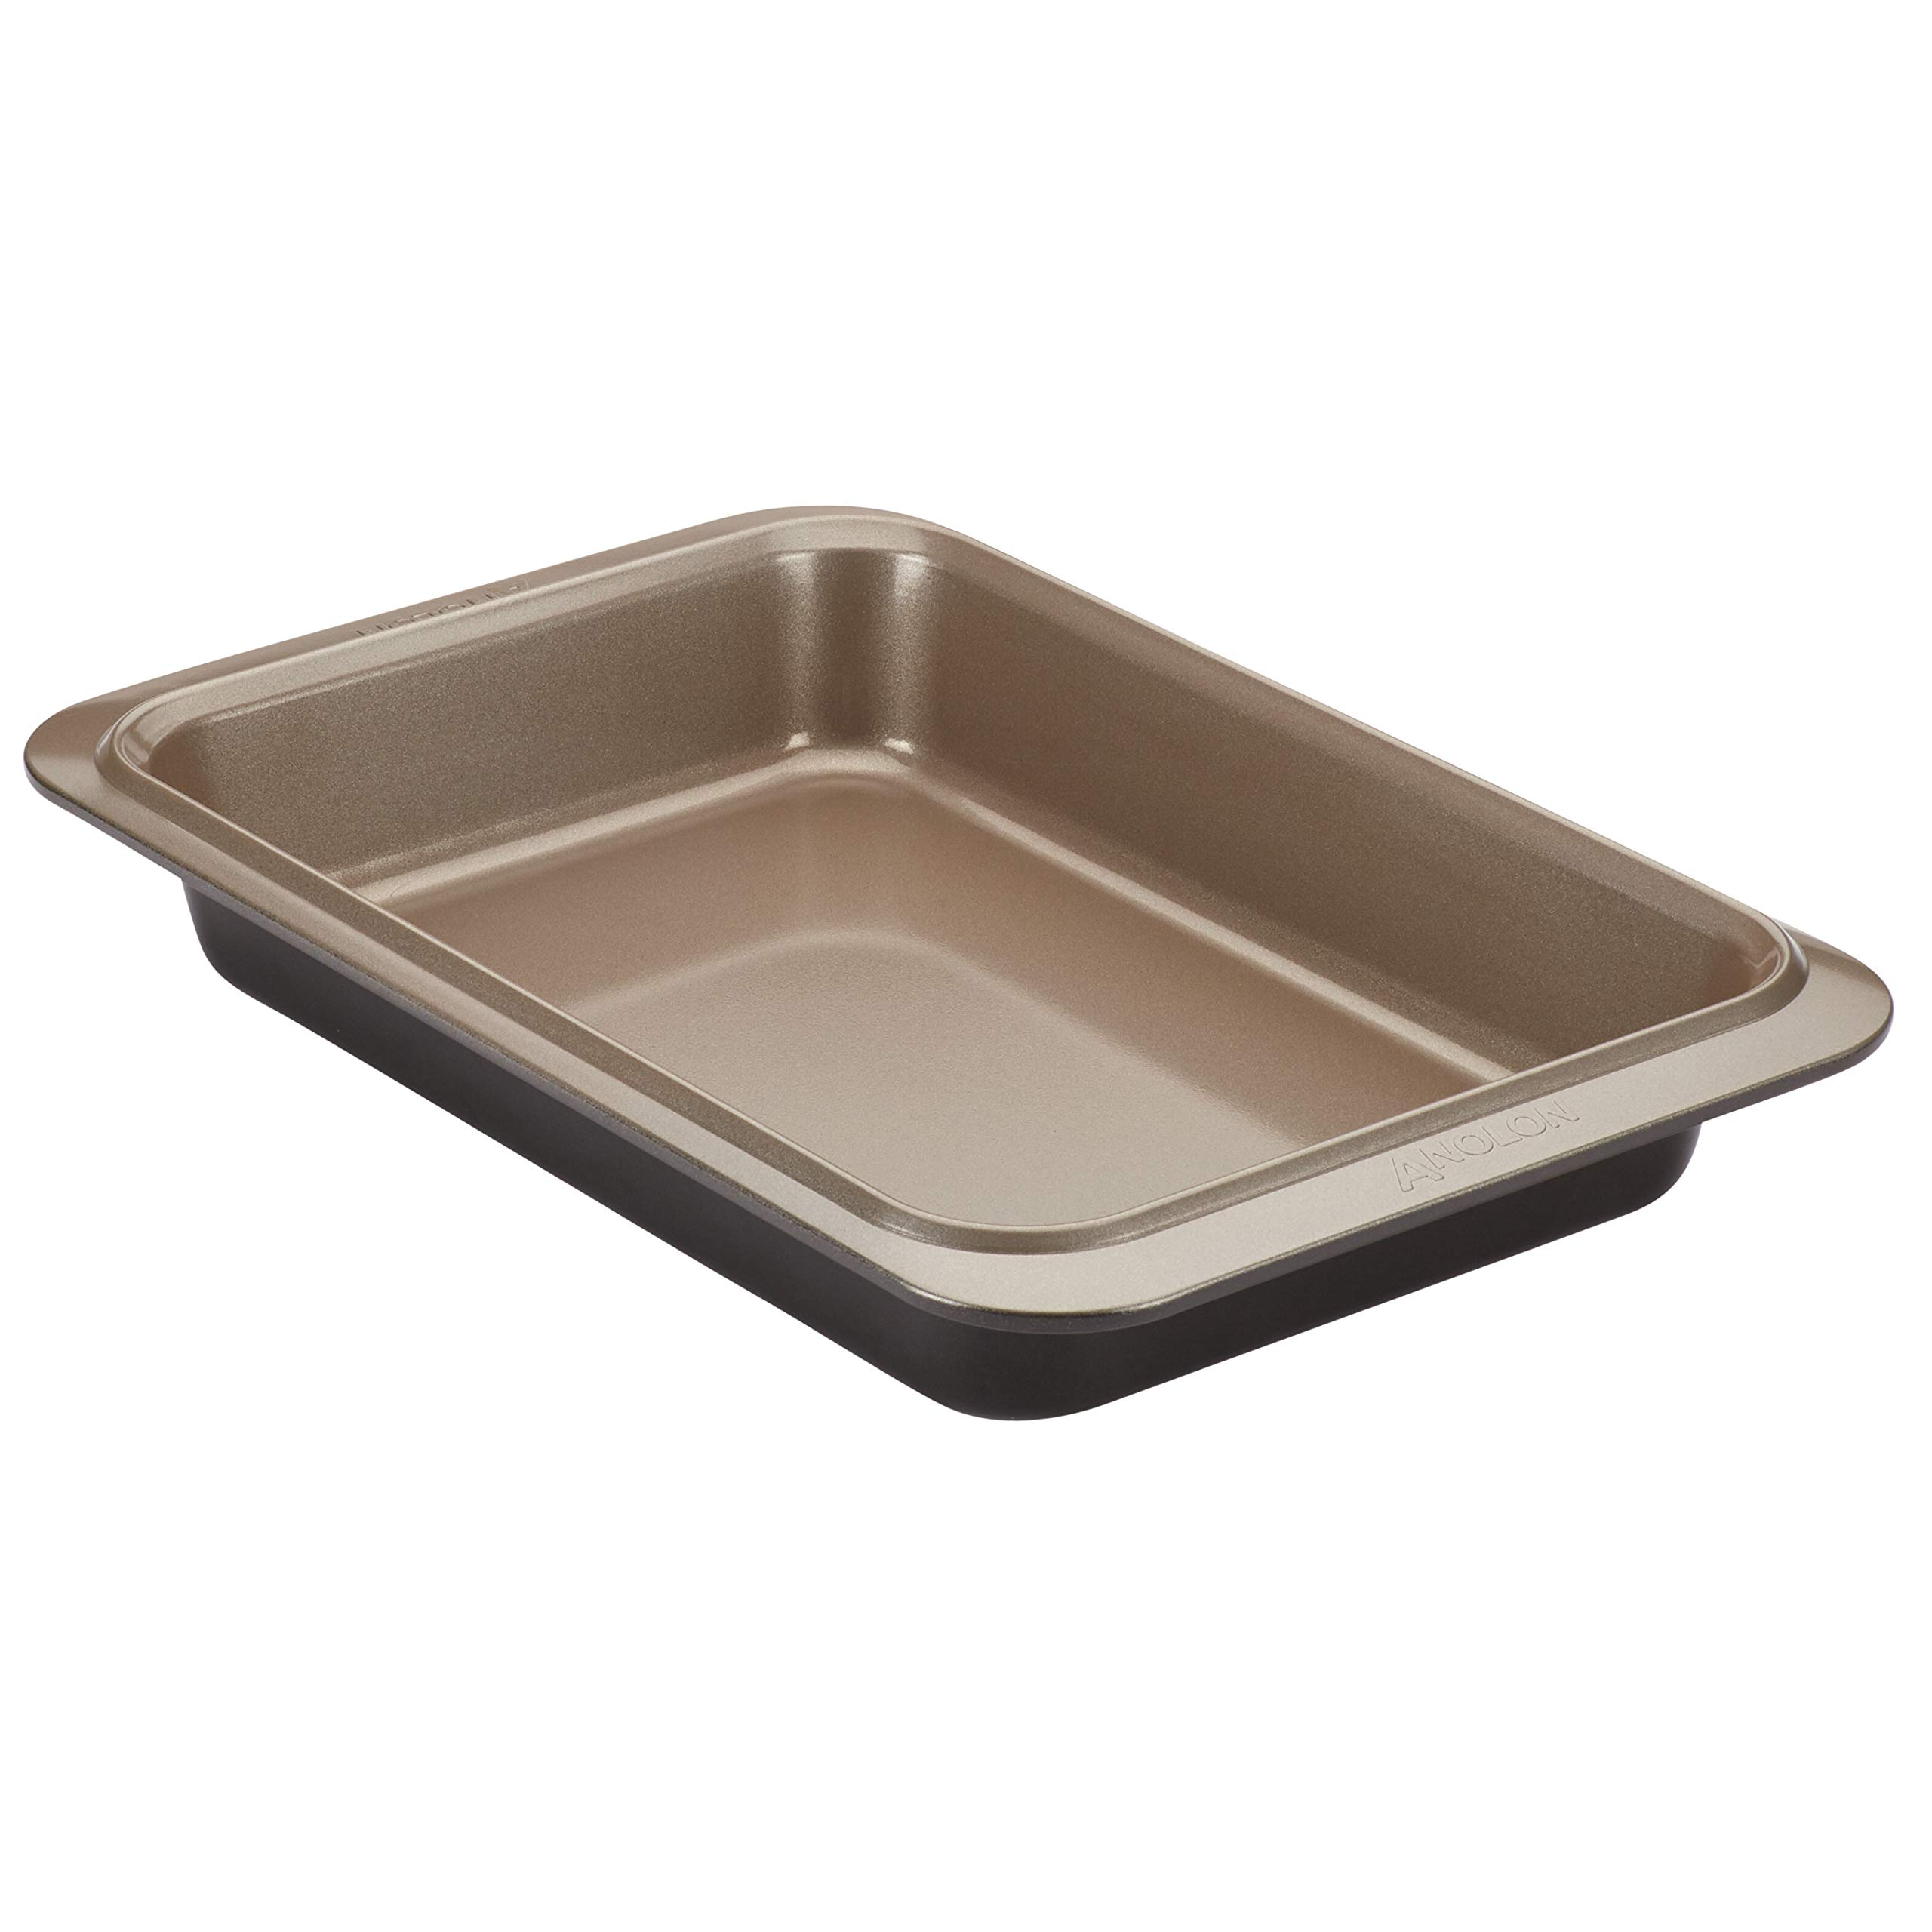 Anolon Eminence Nonstick Bakeware 9-Inch x 13-Inch Rectangular Cake Pan, Onyx with Umber Interior